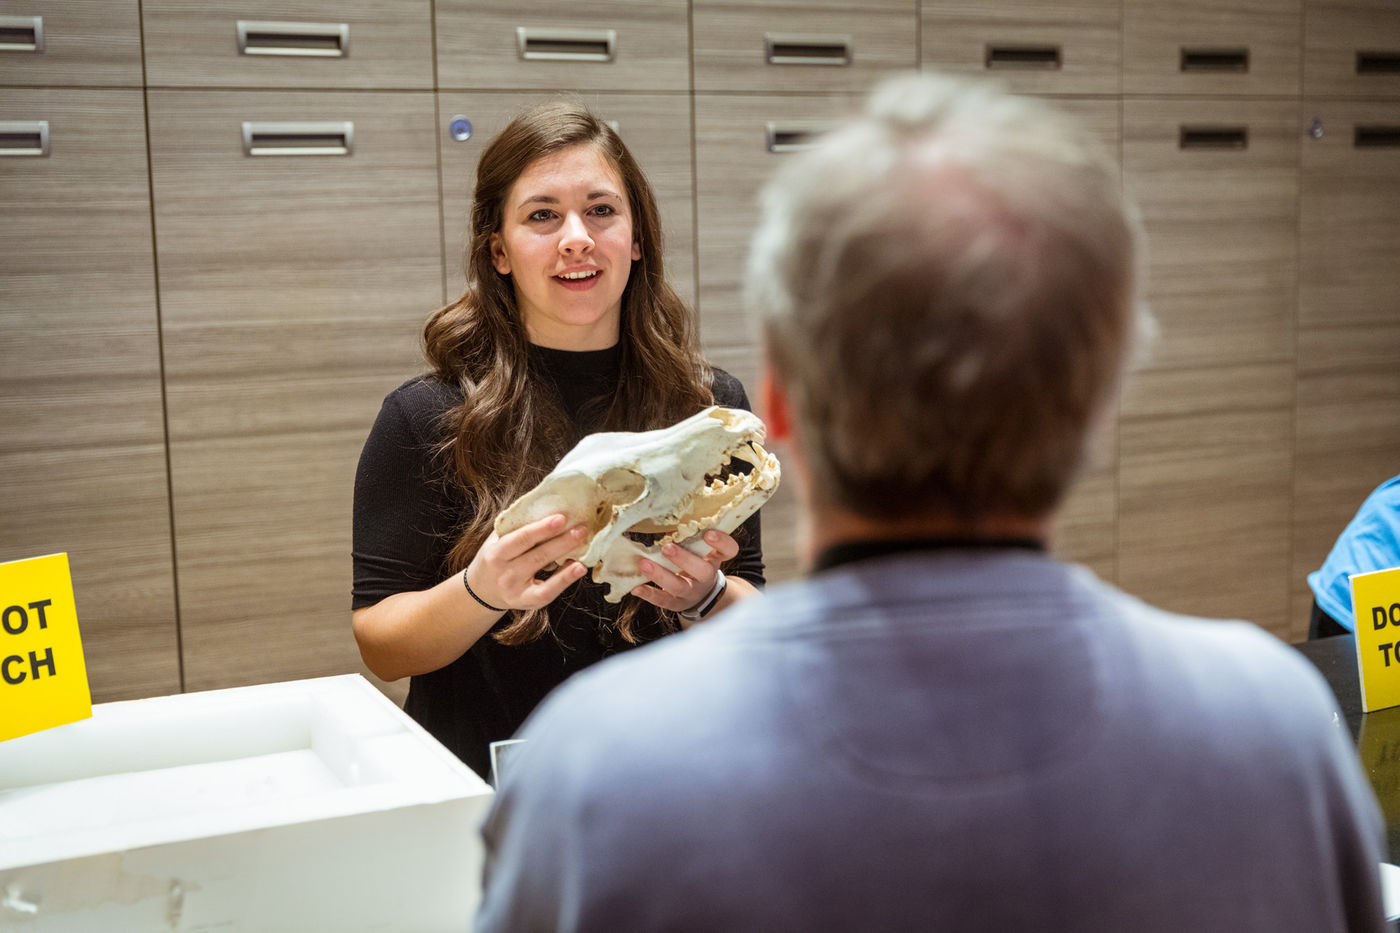 A volunteer shares a skull with a visitor to the Grainger Science Hub during a Meet a Scientist Event. The volunteer holds the skull up while speaking with the visitor who is standing directly in front of the volunteer with only the back of their head visible.